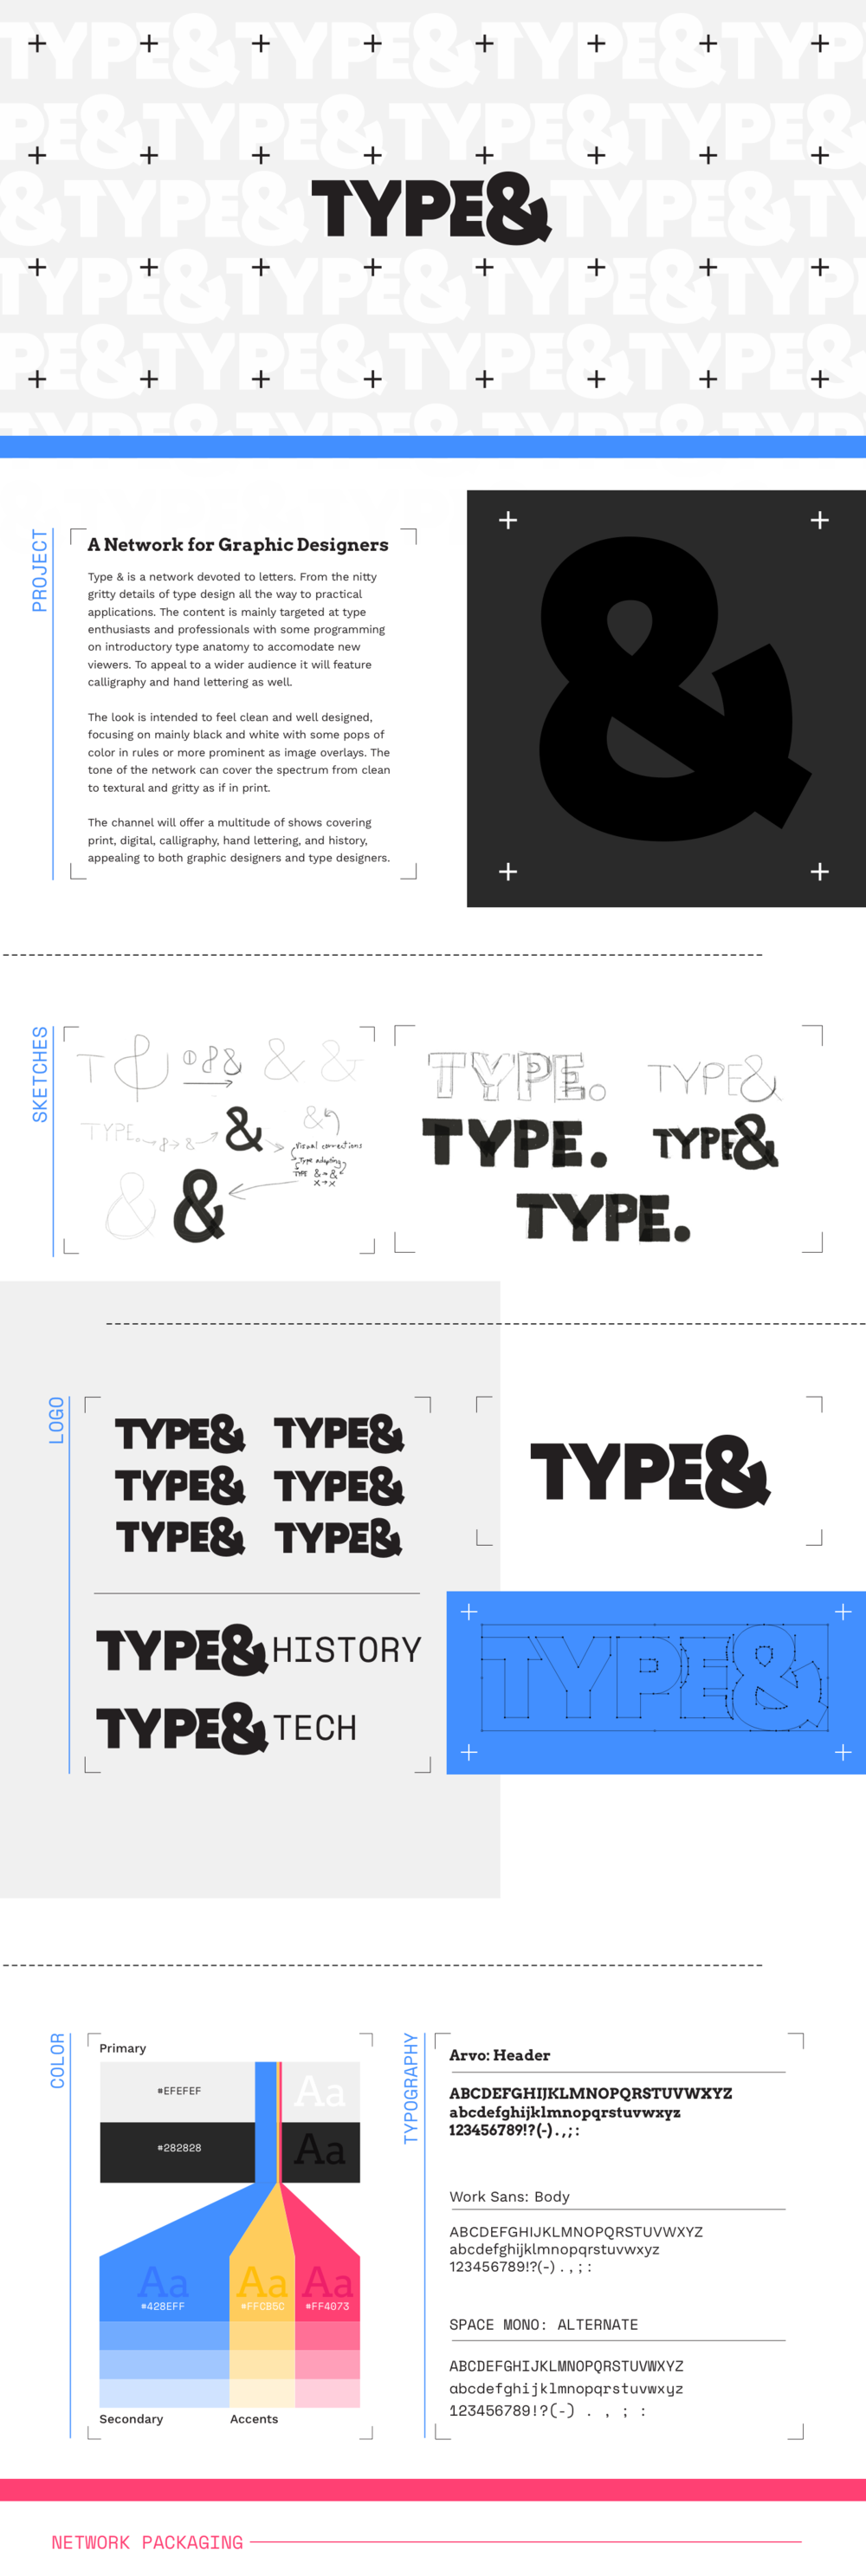 Type-network.png